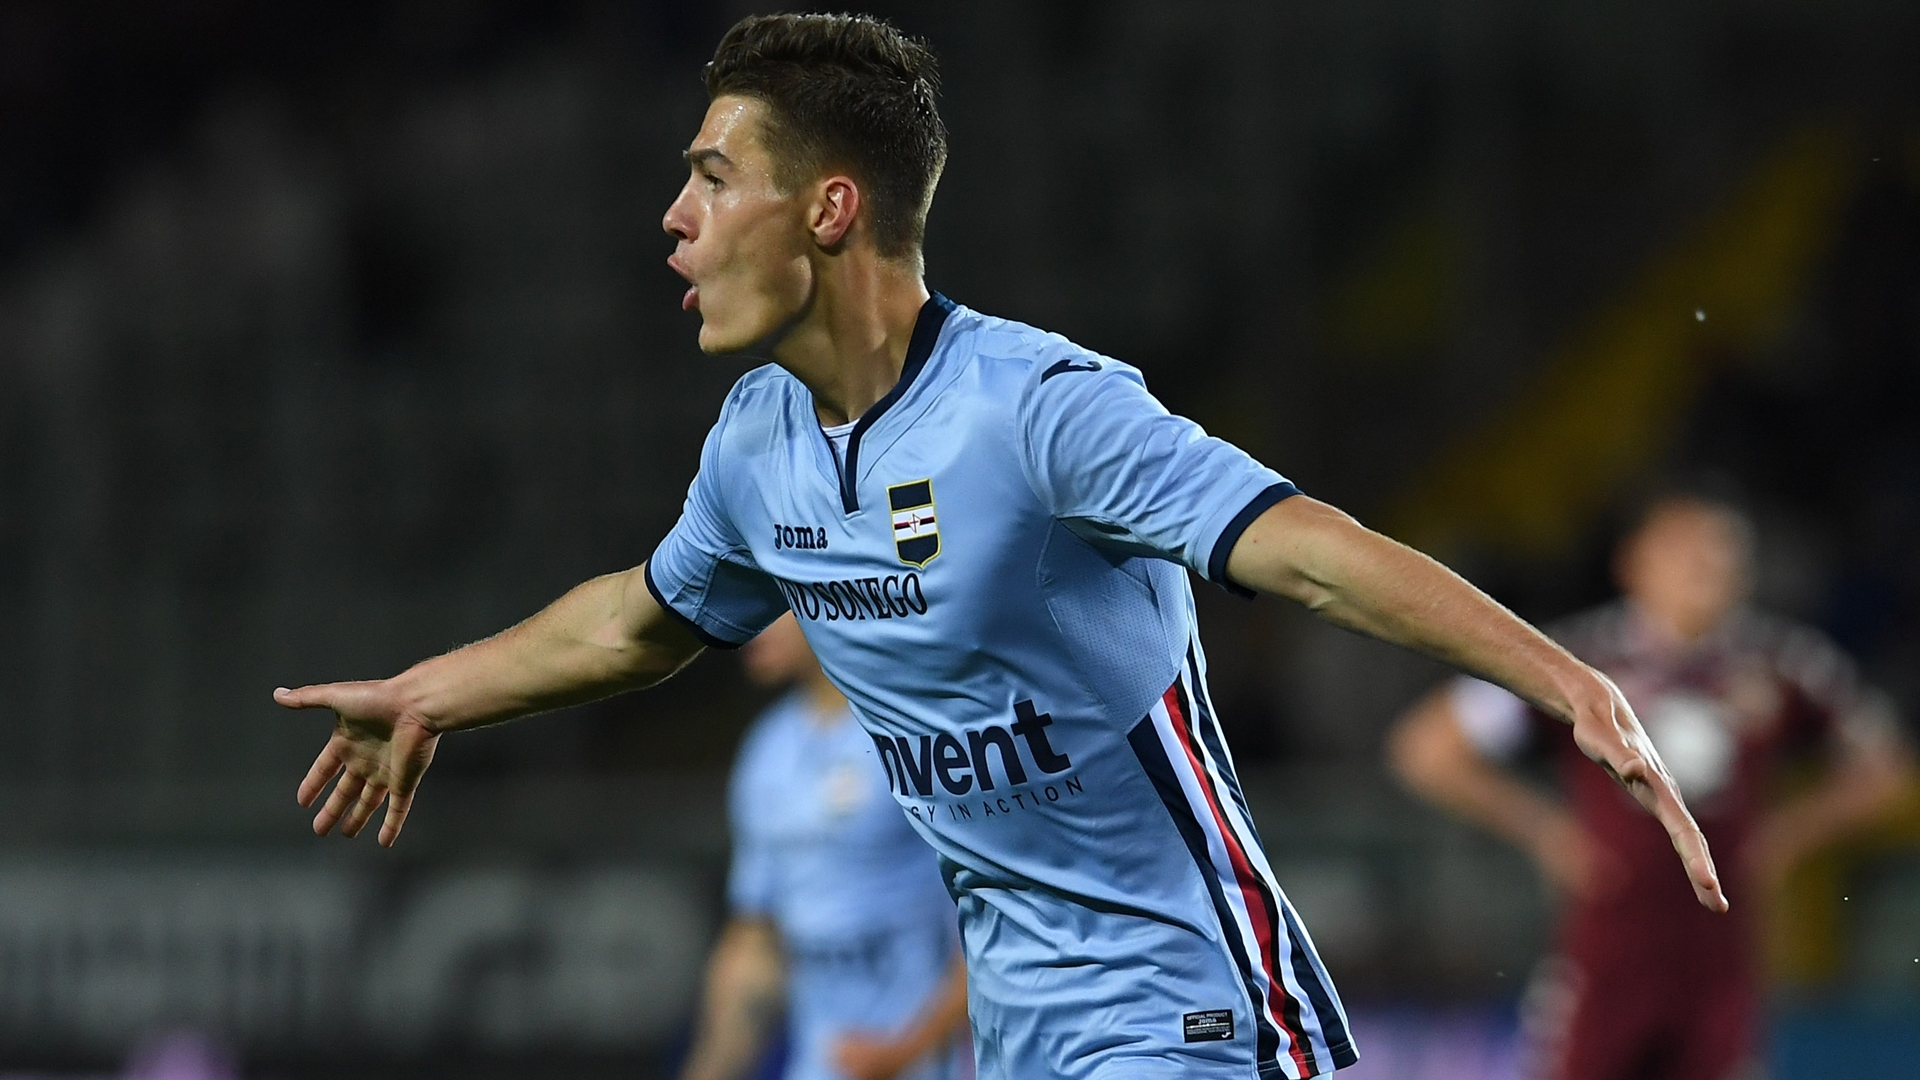 Juventus had recently announced that an agreement had been reached with Sampdoria over the transfer of Czech forward Patrik Schick, but the deal is now doubt.